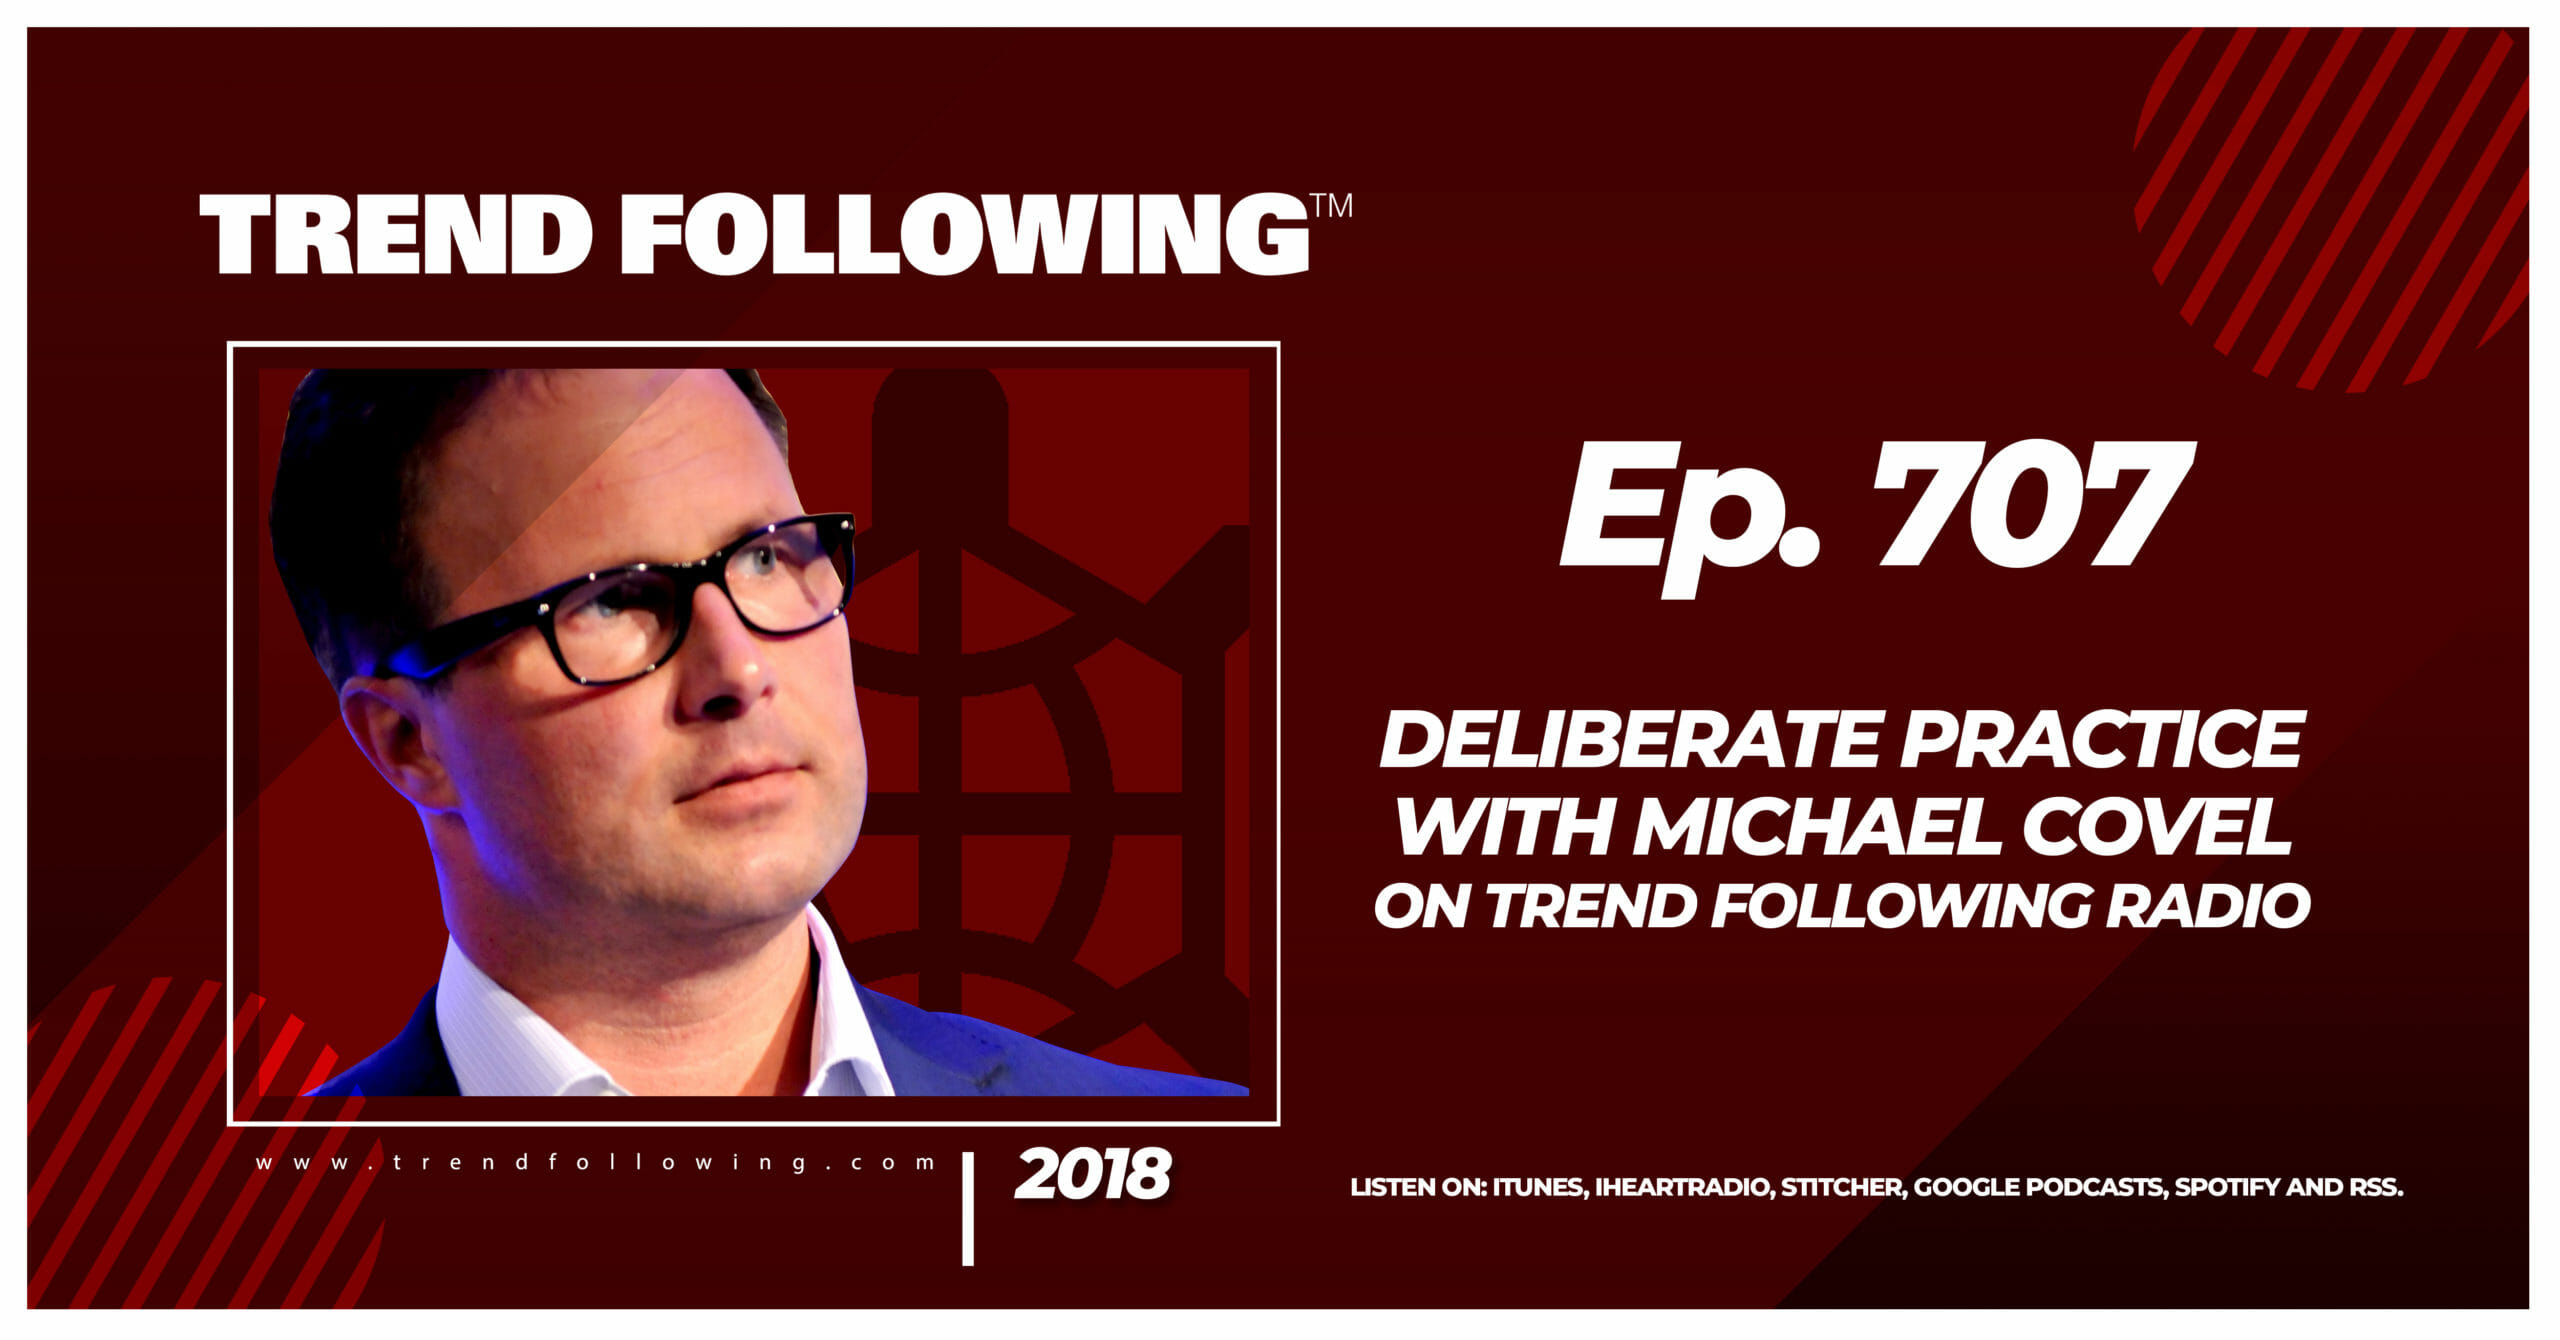 Deliberate Practice with Michael Covel